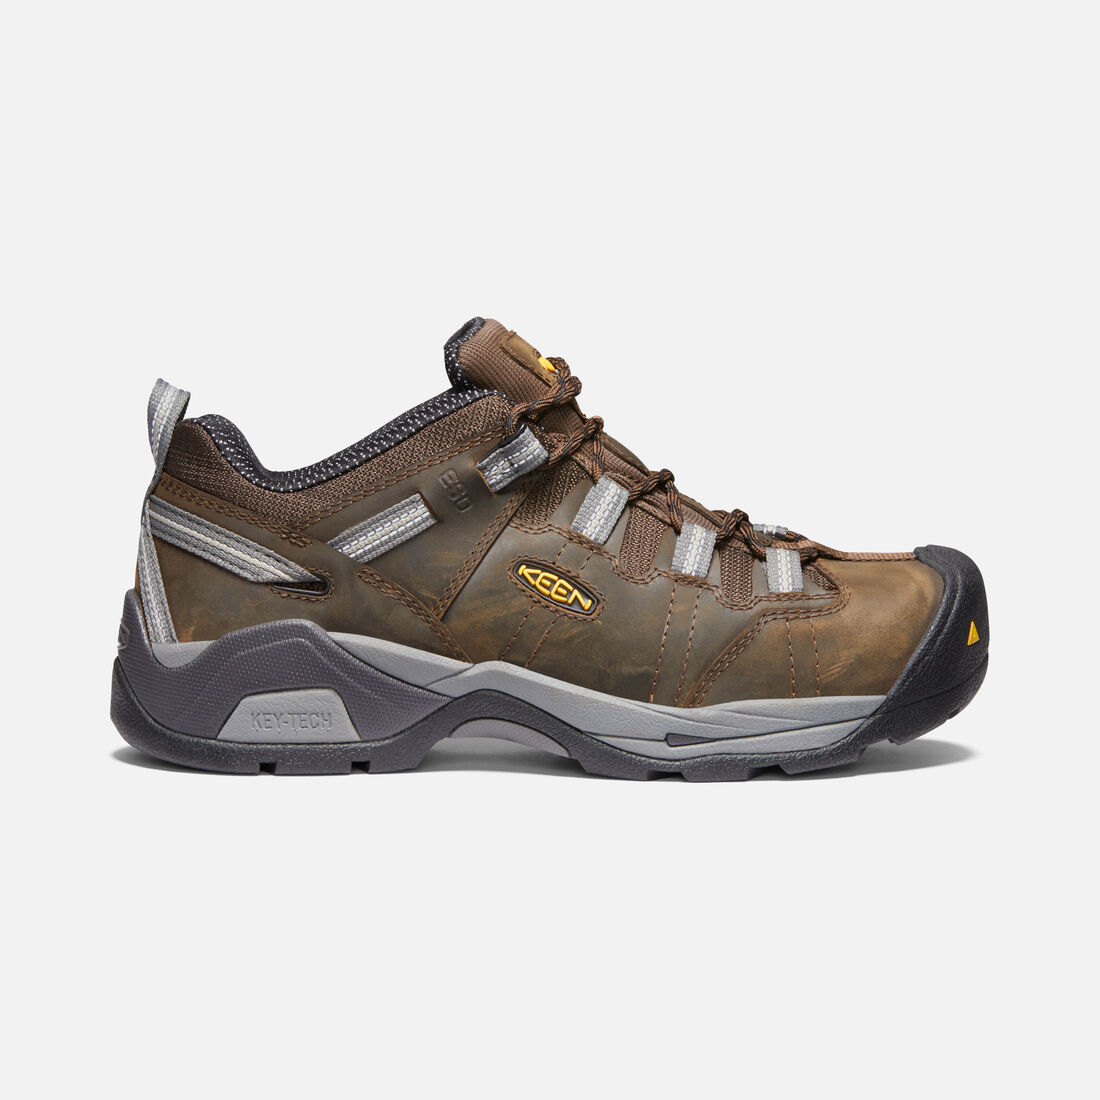 96e5b3dc408d Men s Detroit XT ESD (Steel Toe) in CASCADE BROWN GARGOYLE - large view